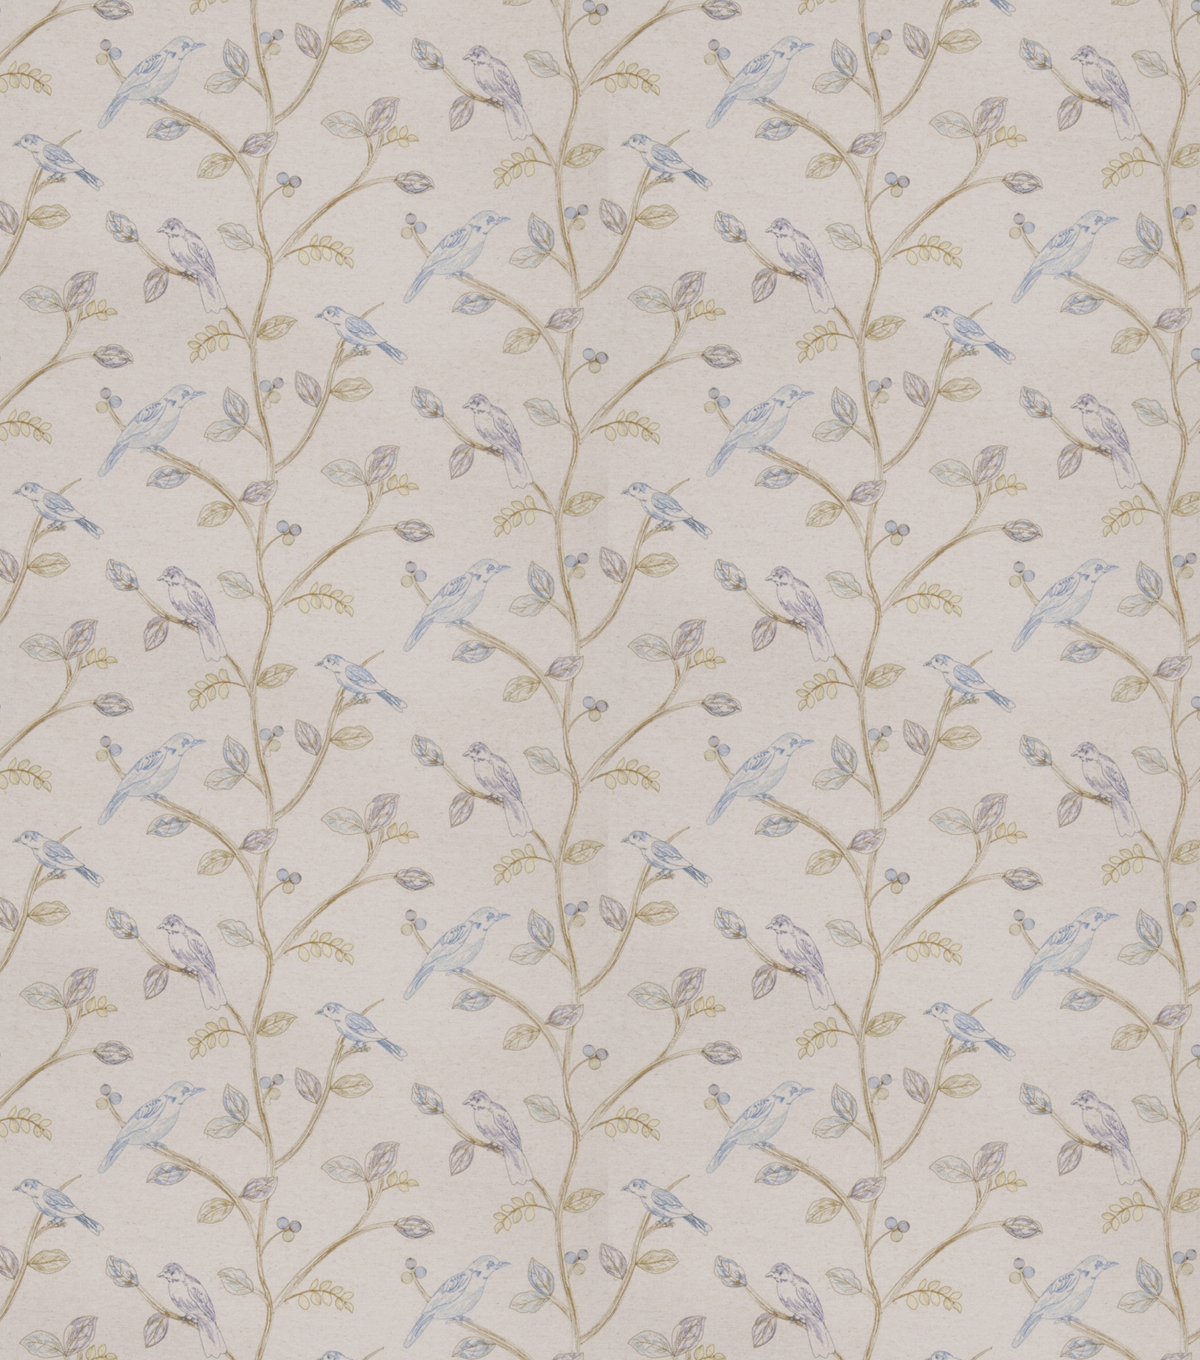 Eaton Square Lightweight Decor Fabric 53\u0022-Riverhill/Plum